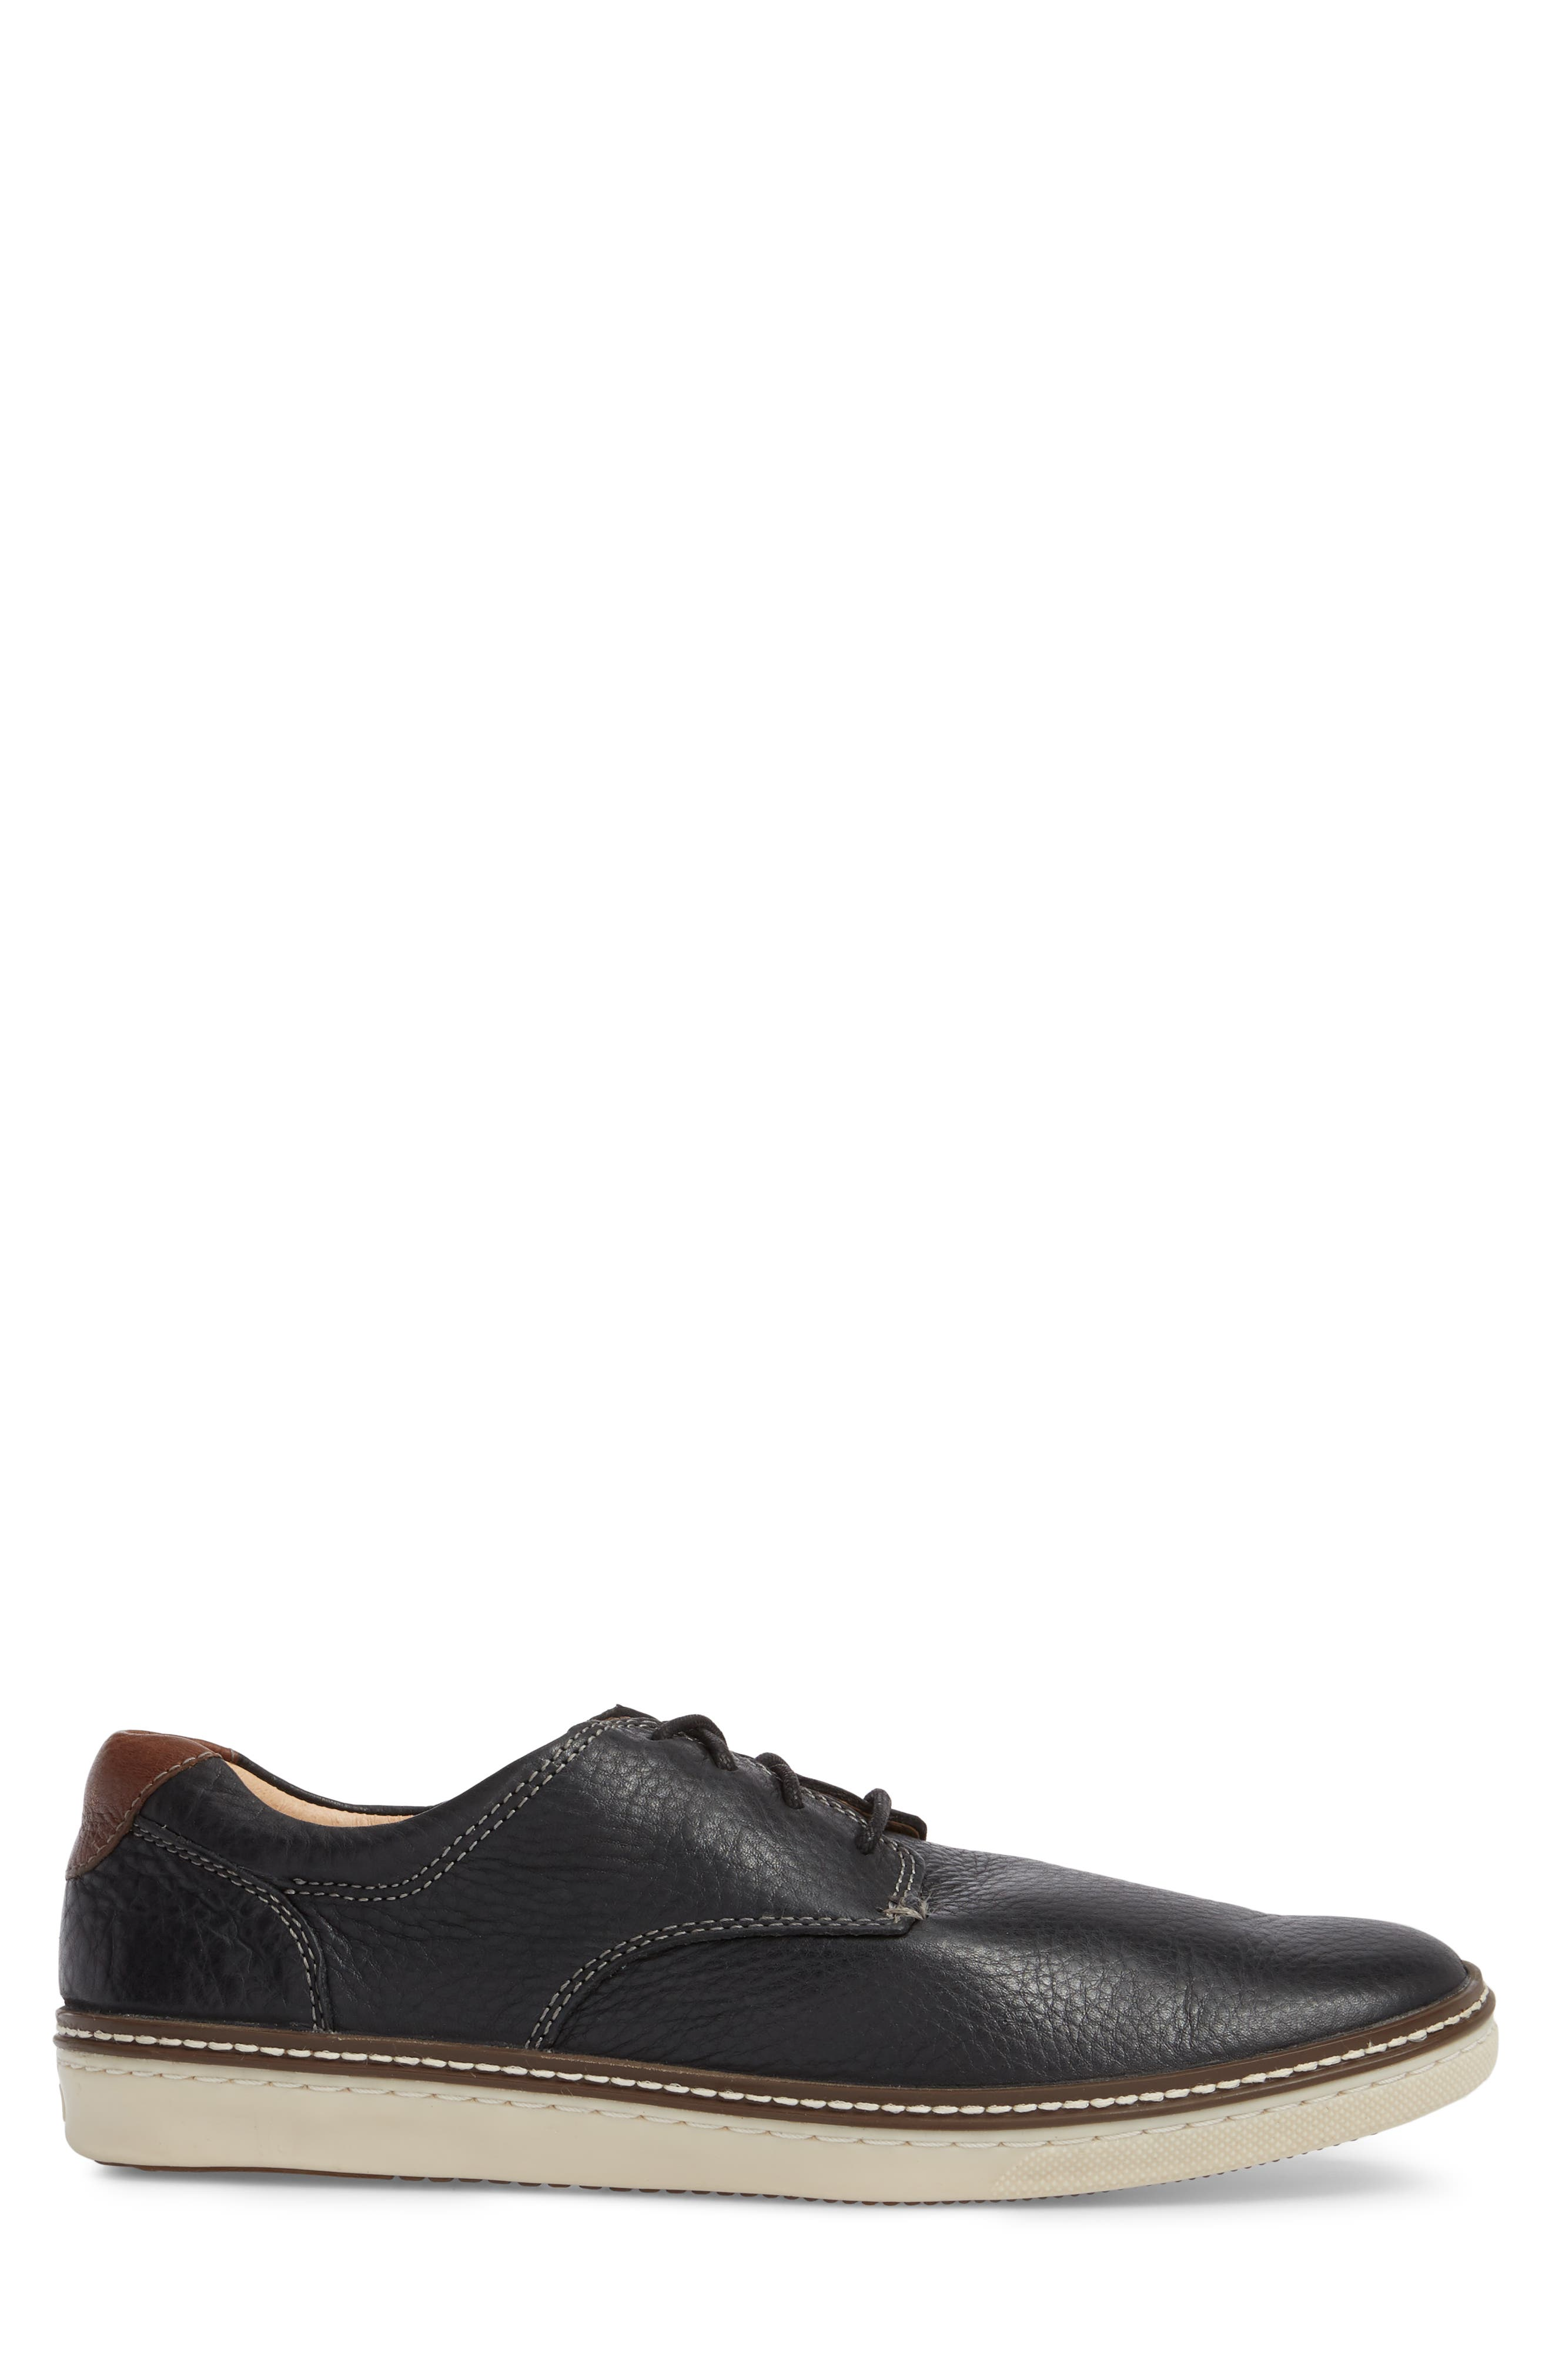 JOHNSTON & MURPHY, McGuffey Derby Sneaker, Alternate thumbnail 3, color, BLACK LEATHER